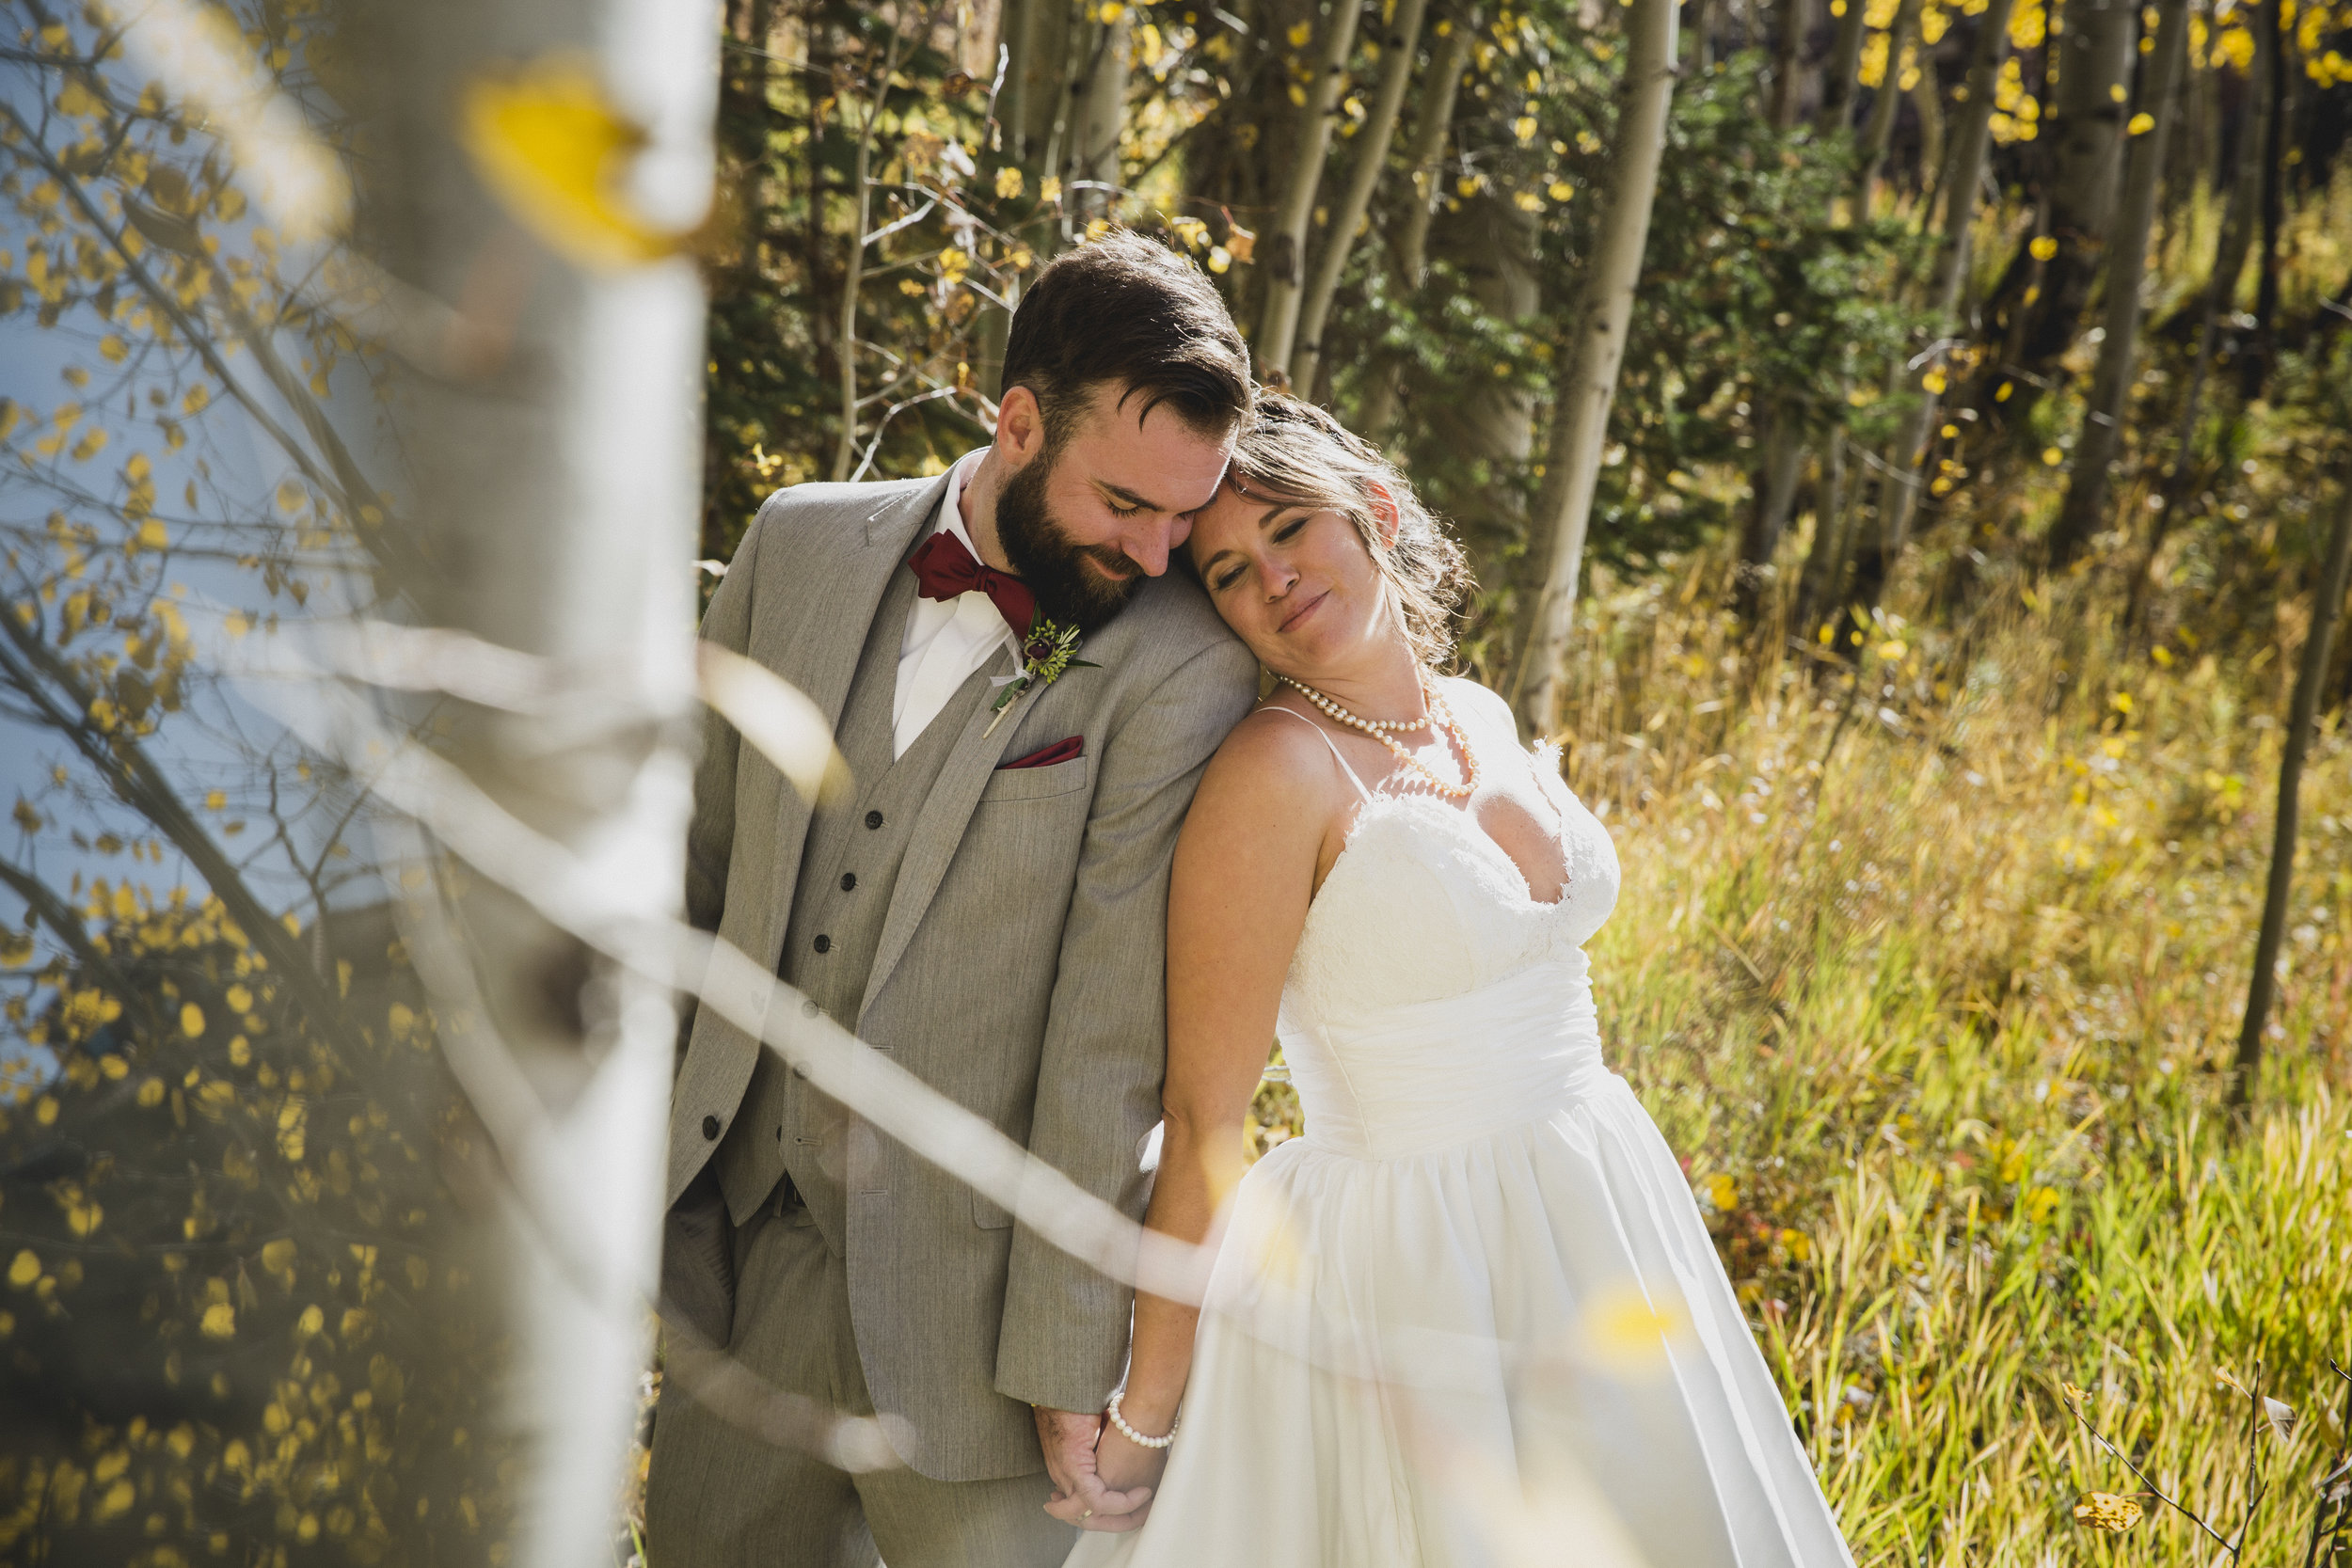 NE-LeahandAshtonphotography-Telluride-Wedding-Photography-9842.jpg